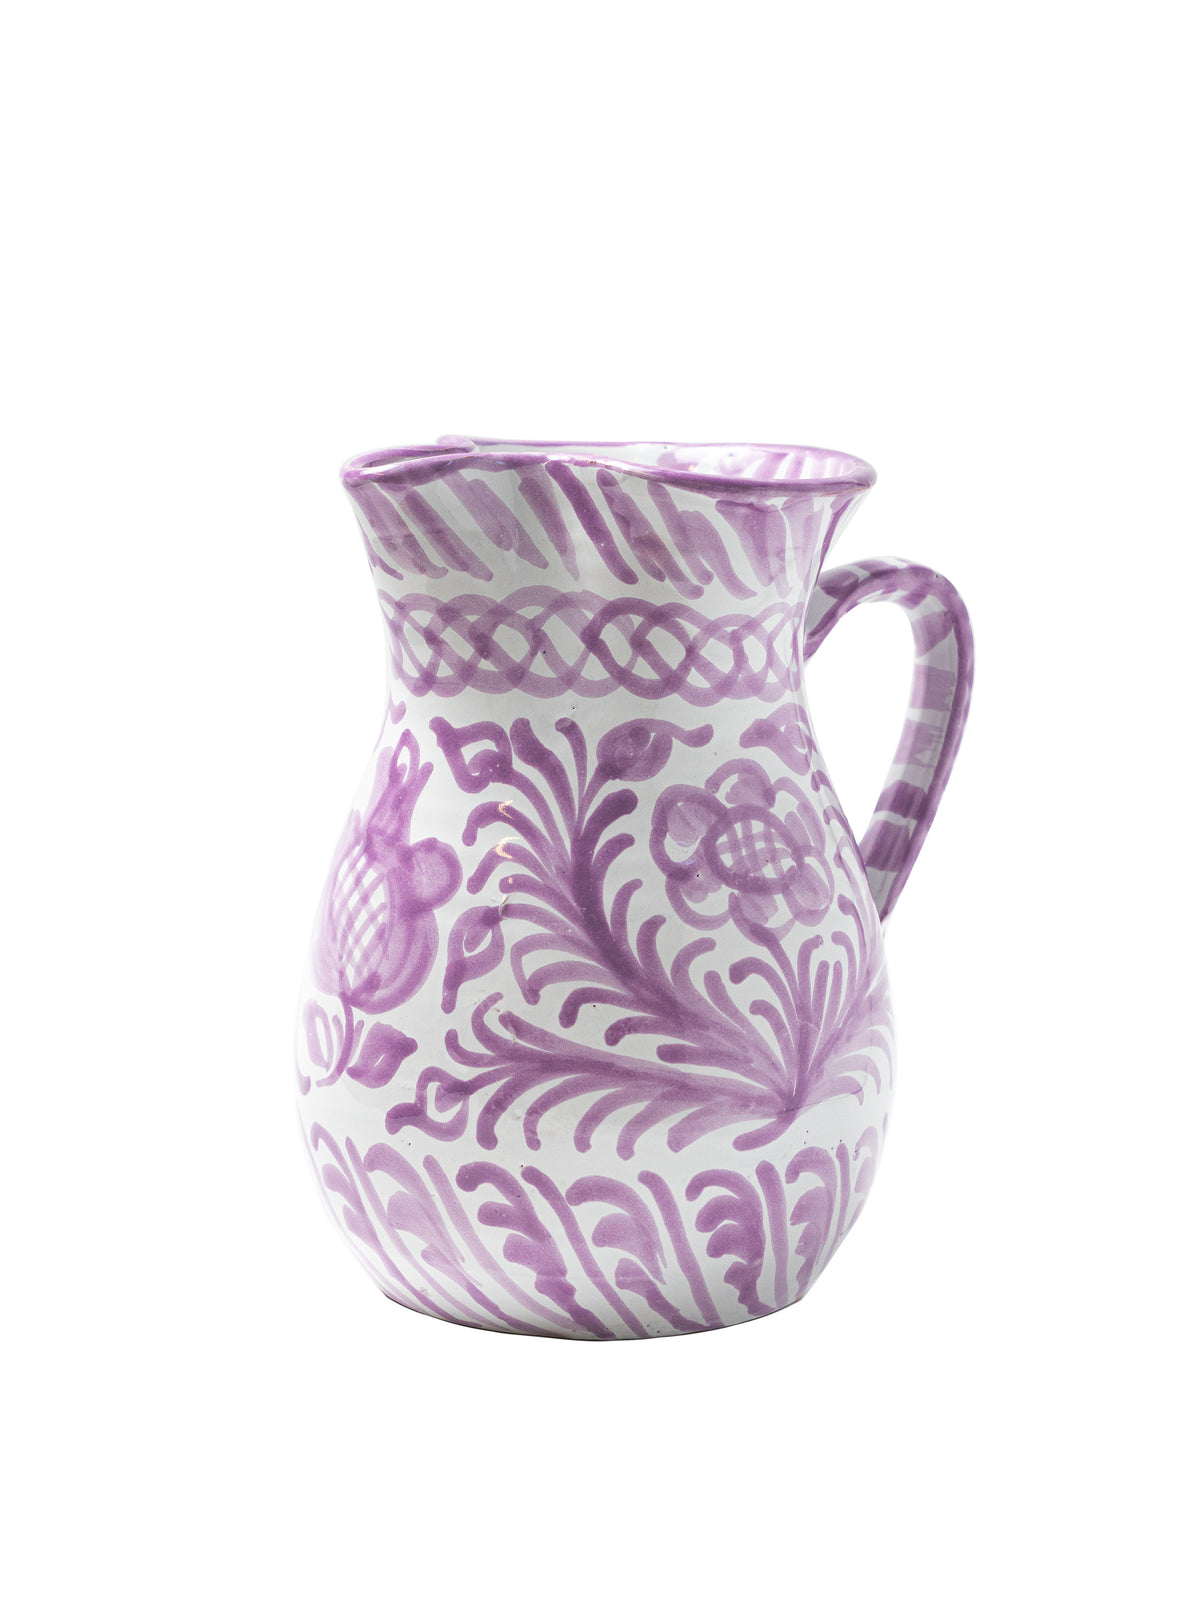 Casa Lila Medium Pitcher with Hand-painted Designs